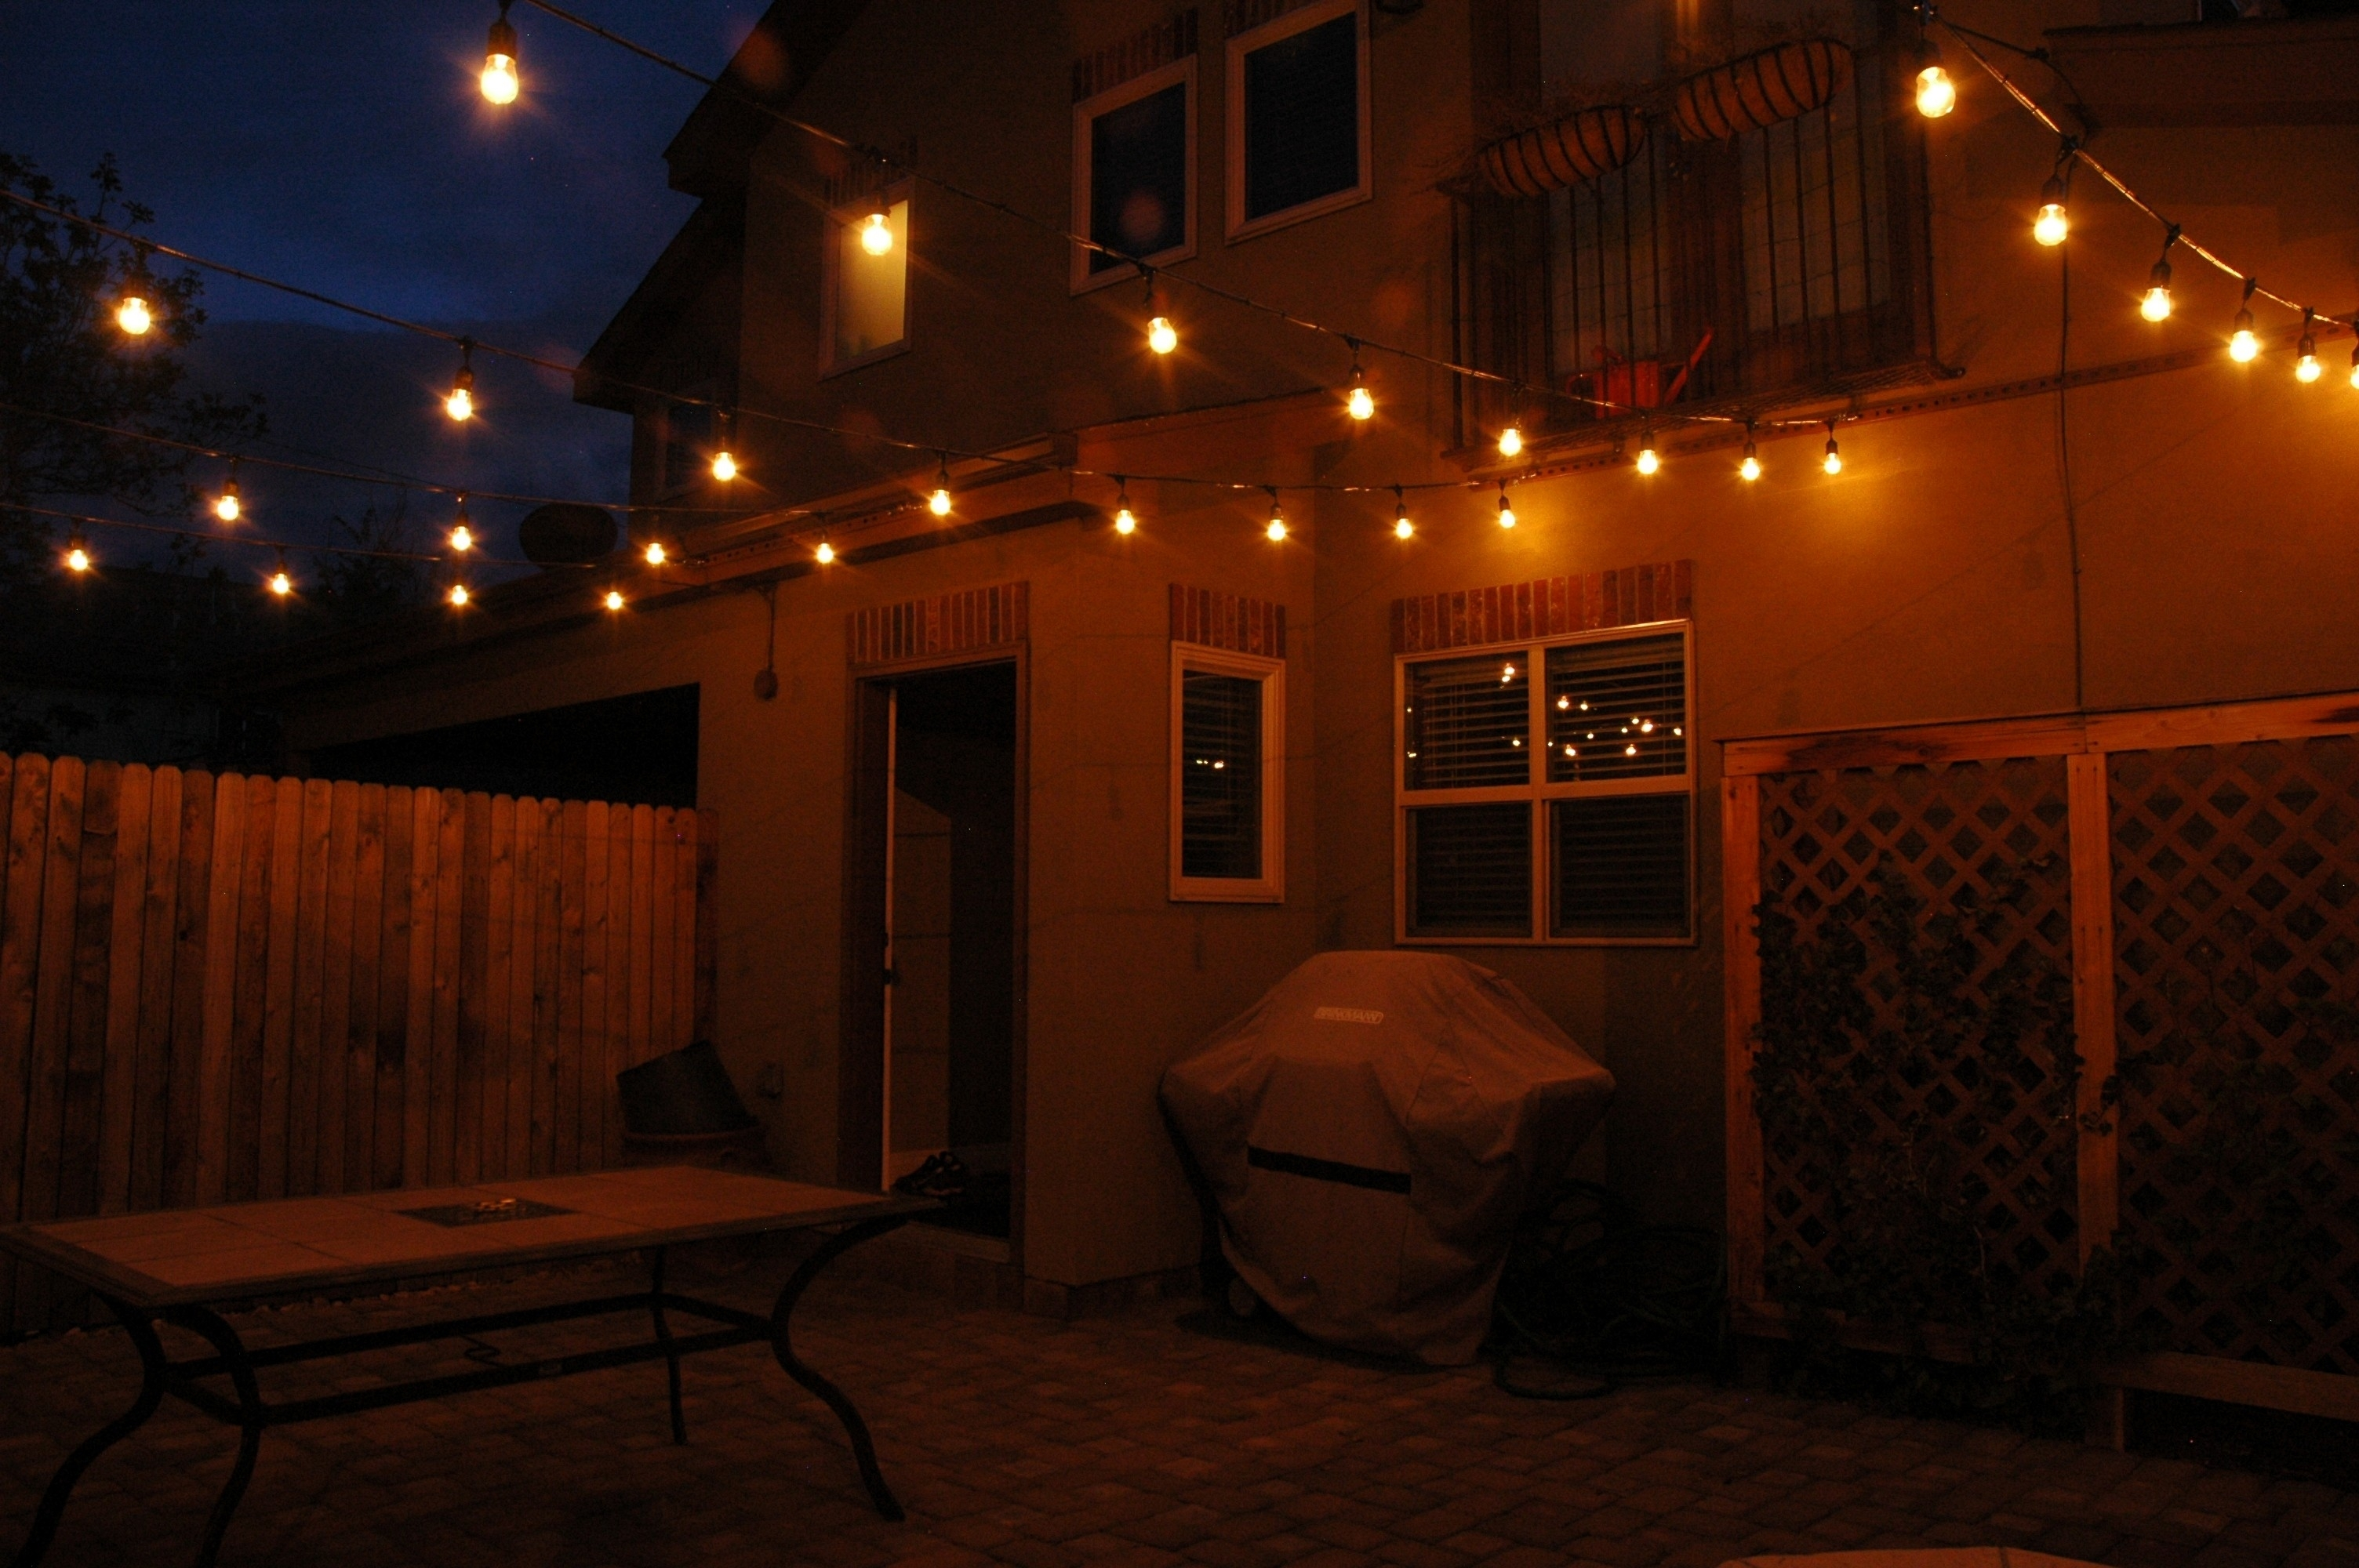 Home Depot Led Outdoor String Lights | Interior Design For Outdoor String Lights At Home Depot (View 8 of 15)